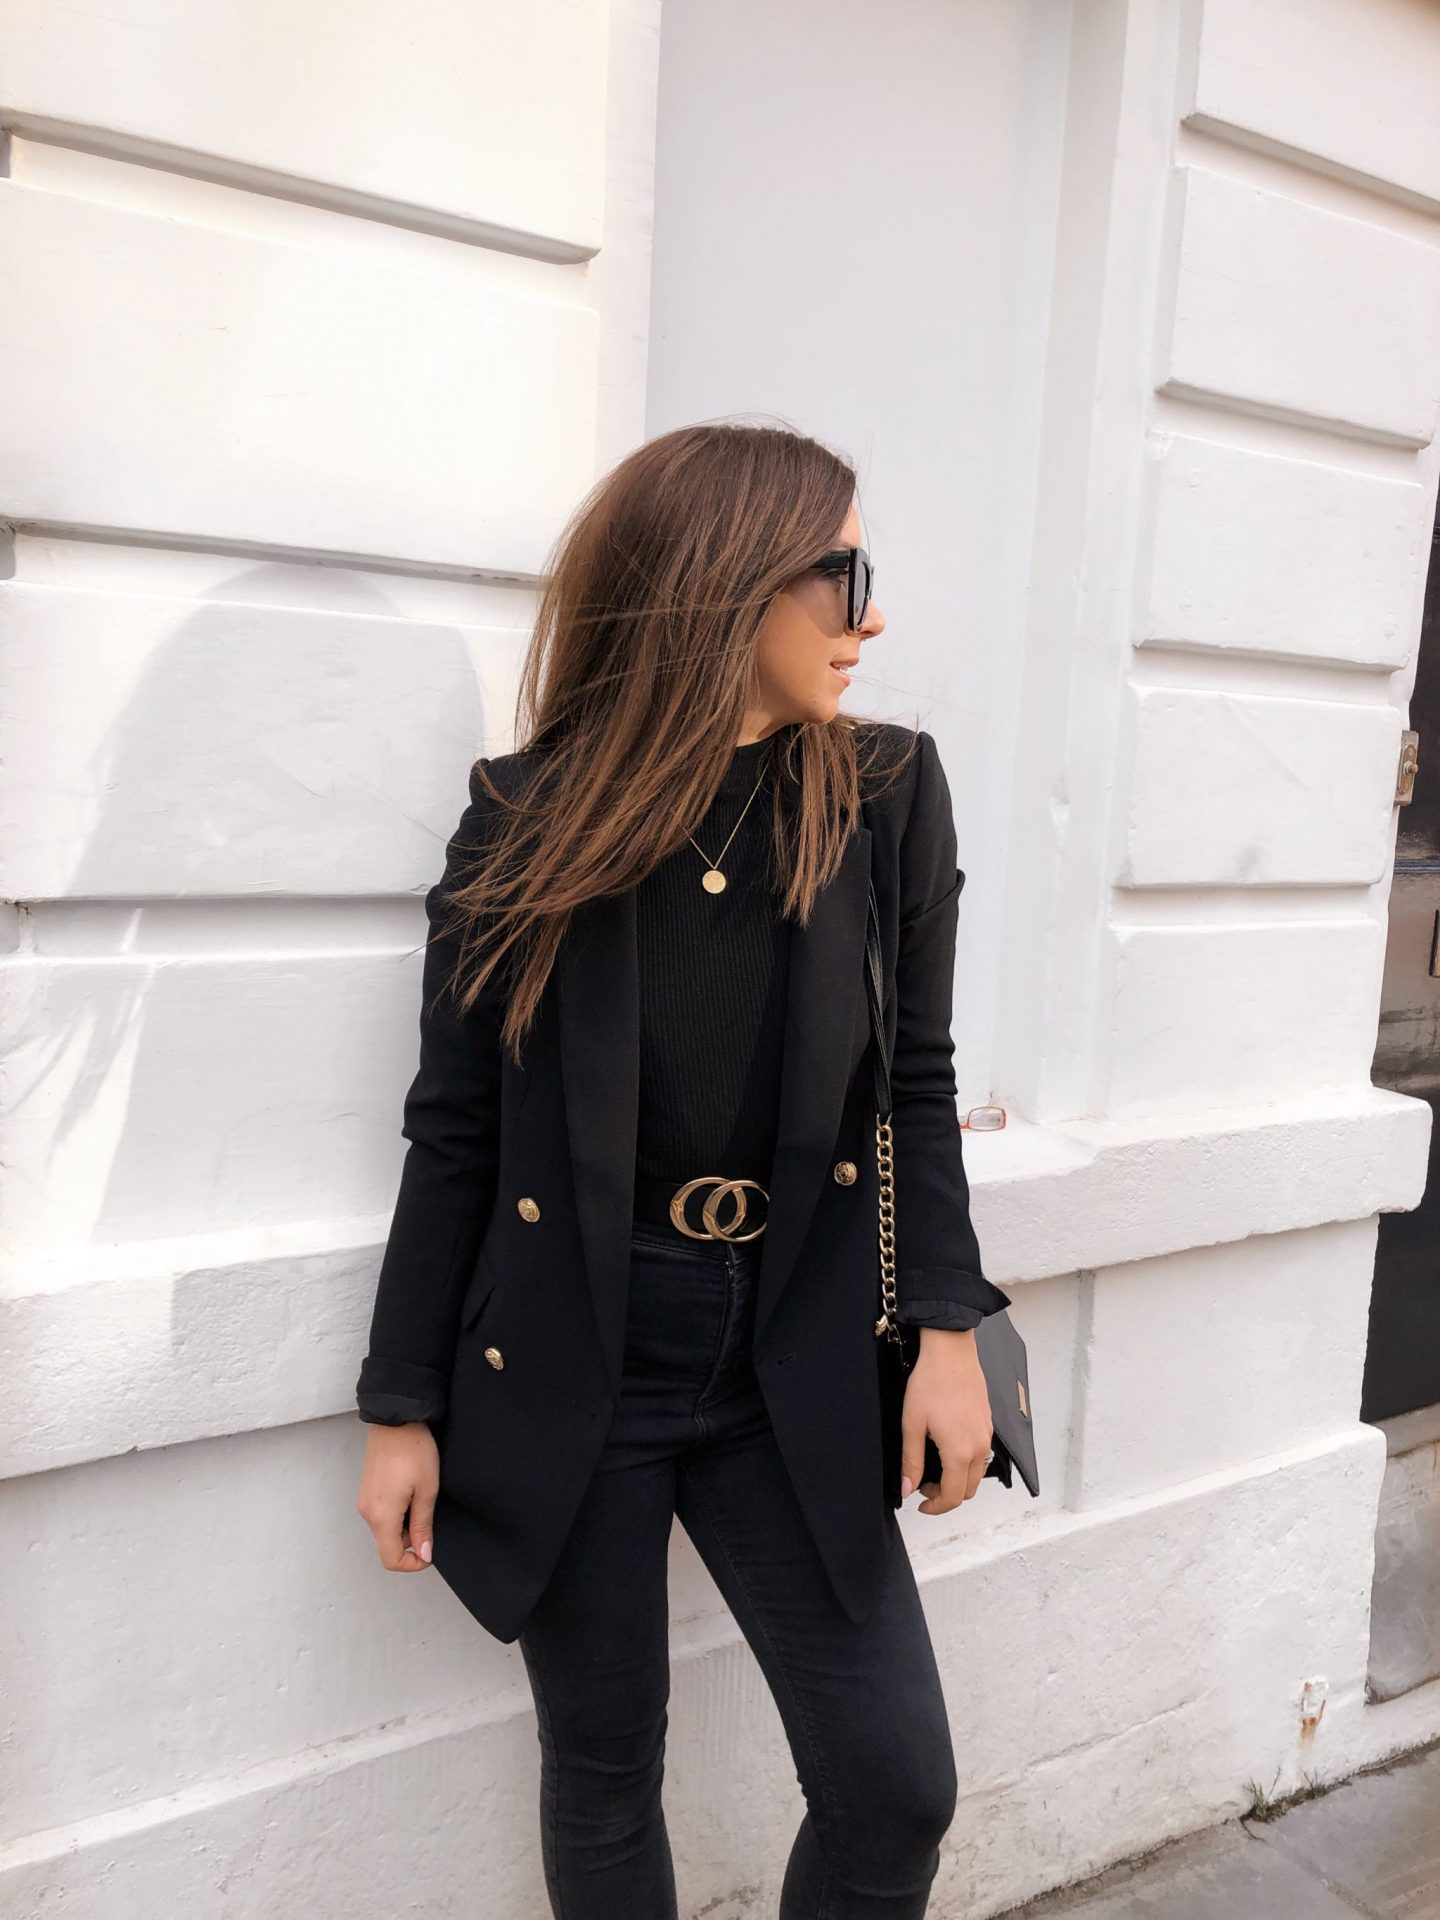 how to look chic on a budget, chic, black blazer, outfit, outfit inspo, dizzybrunette3, fashion,